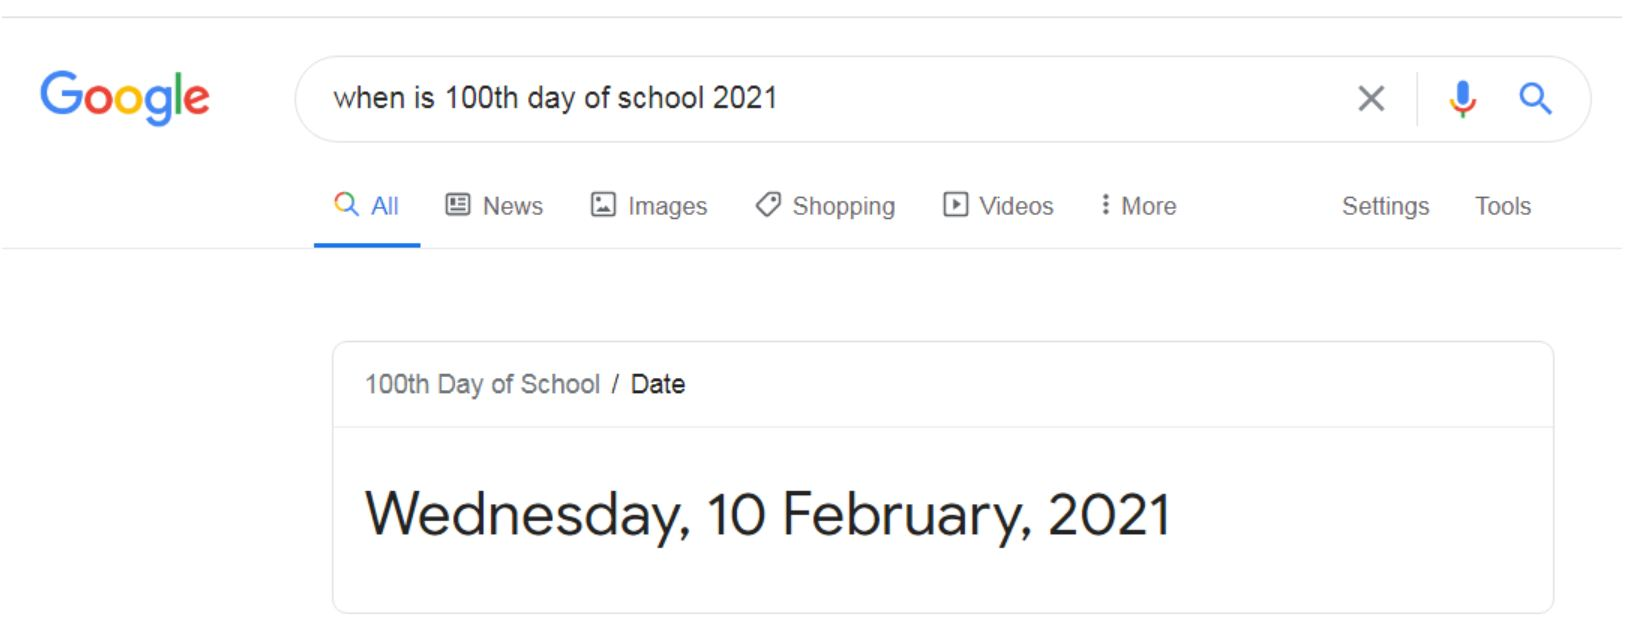 when is 100th day of school in 2021